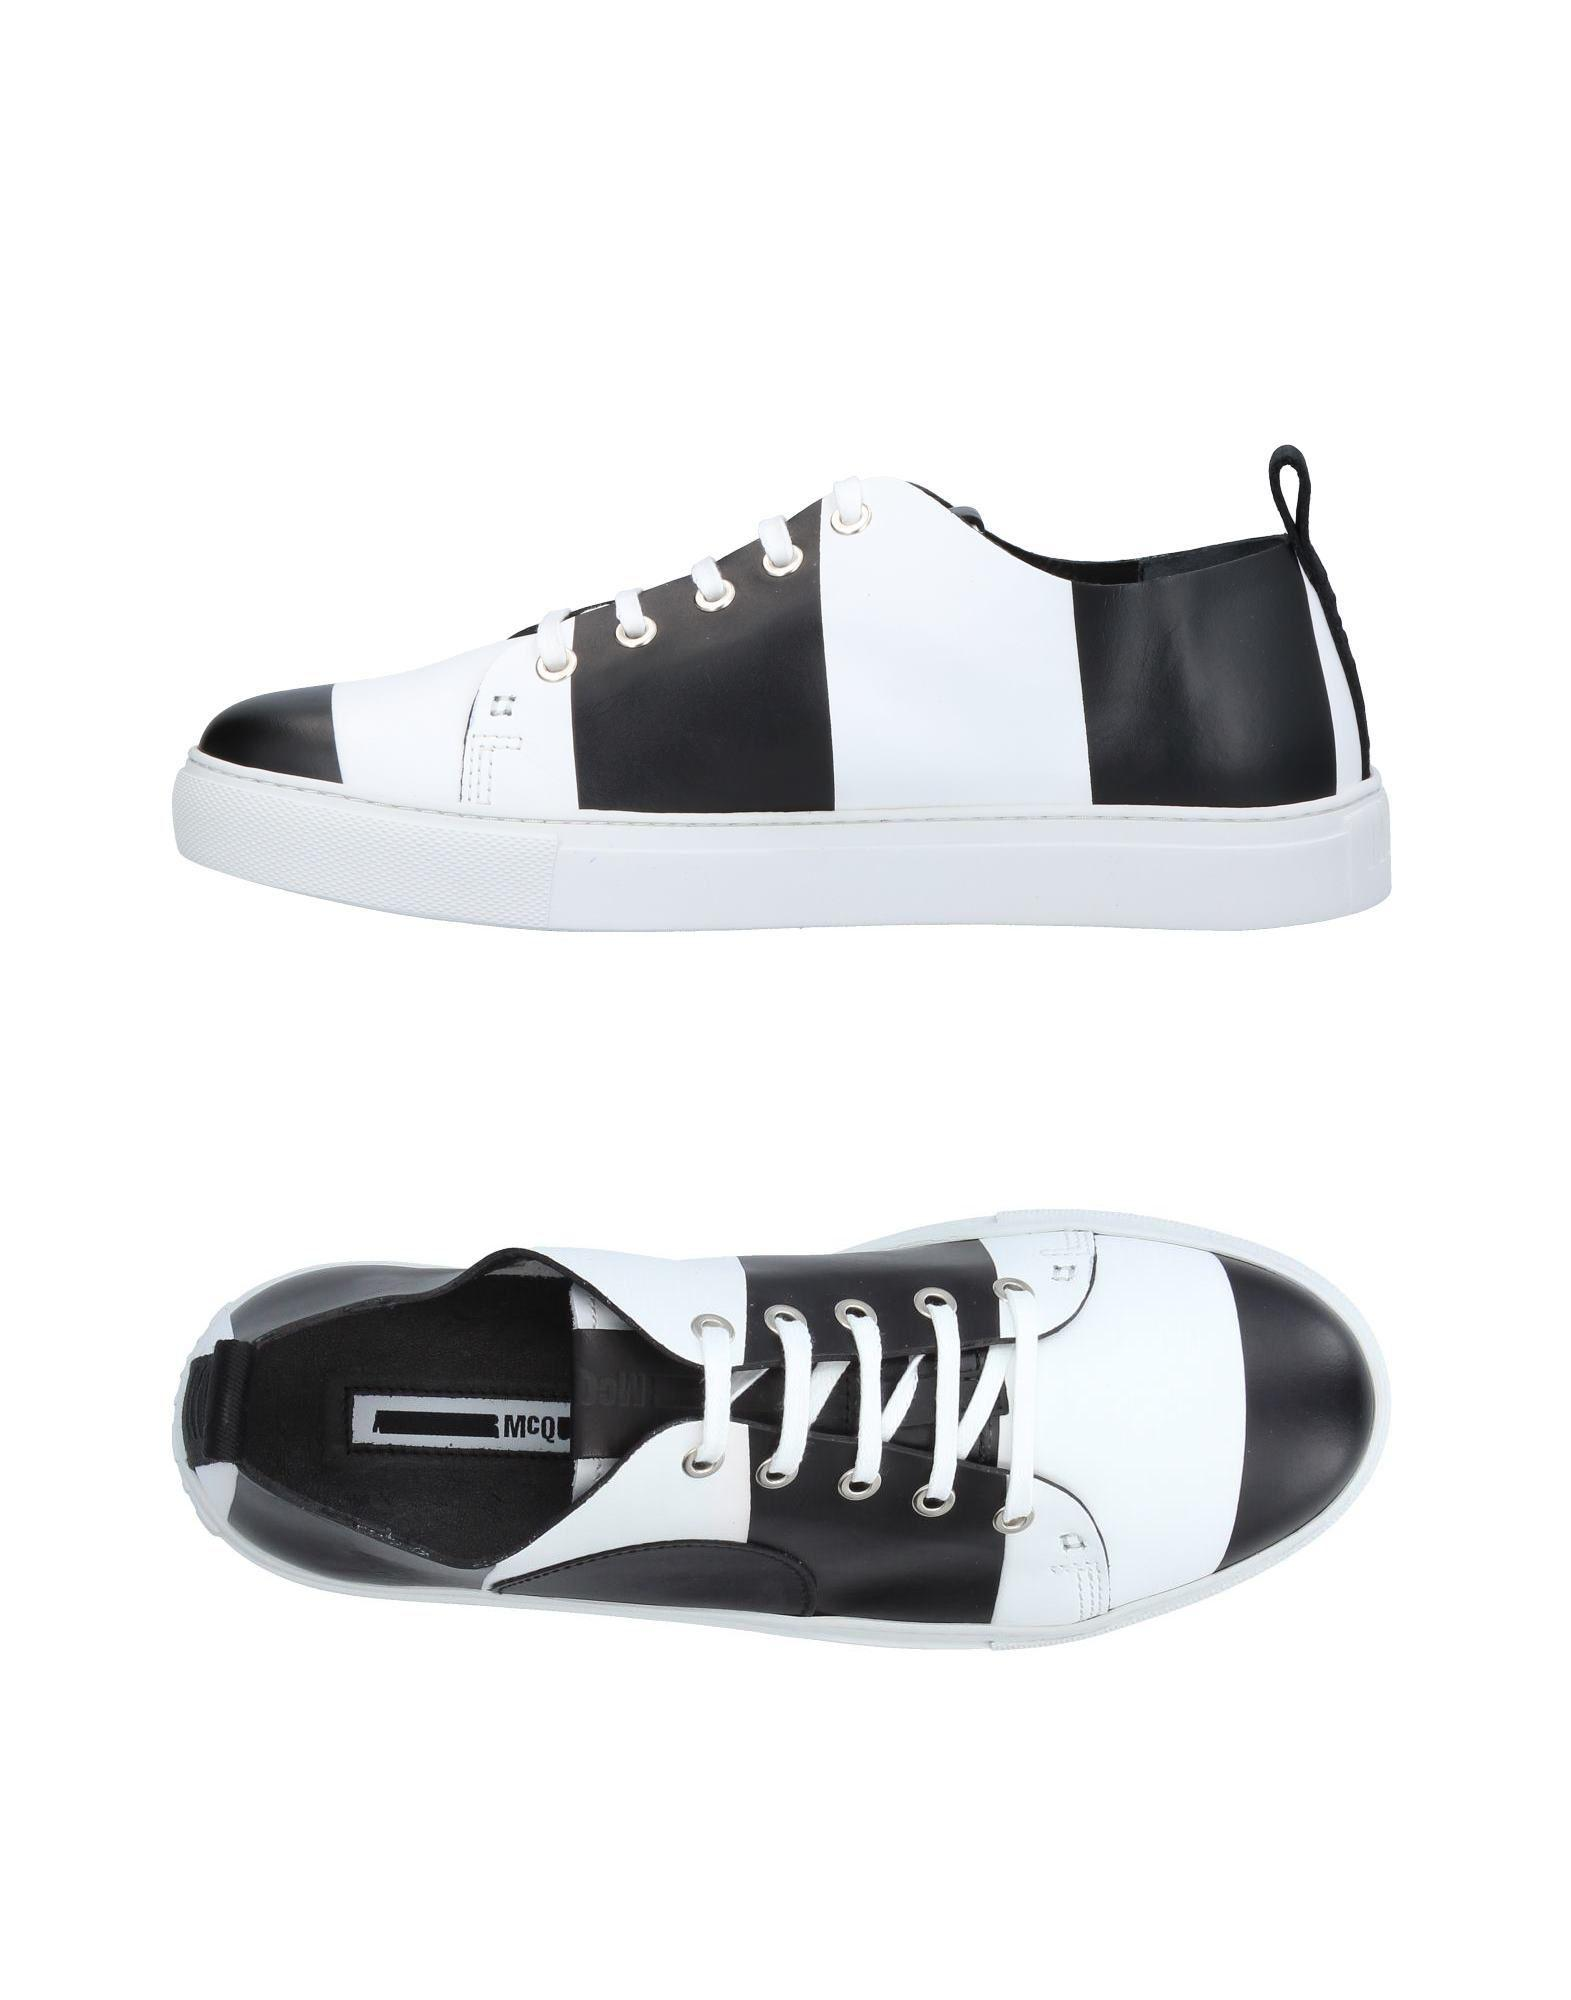 Men in White Sneakers amp; tops Alexander Mcq Low Lyst for Mcqueen vwTq4fxg